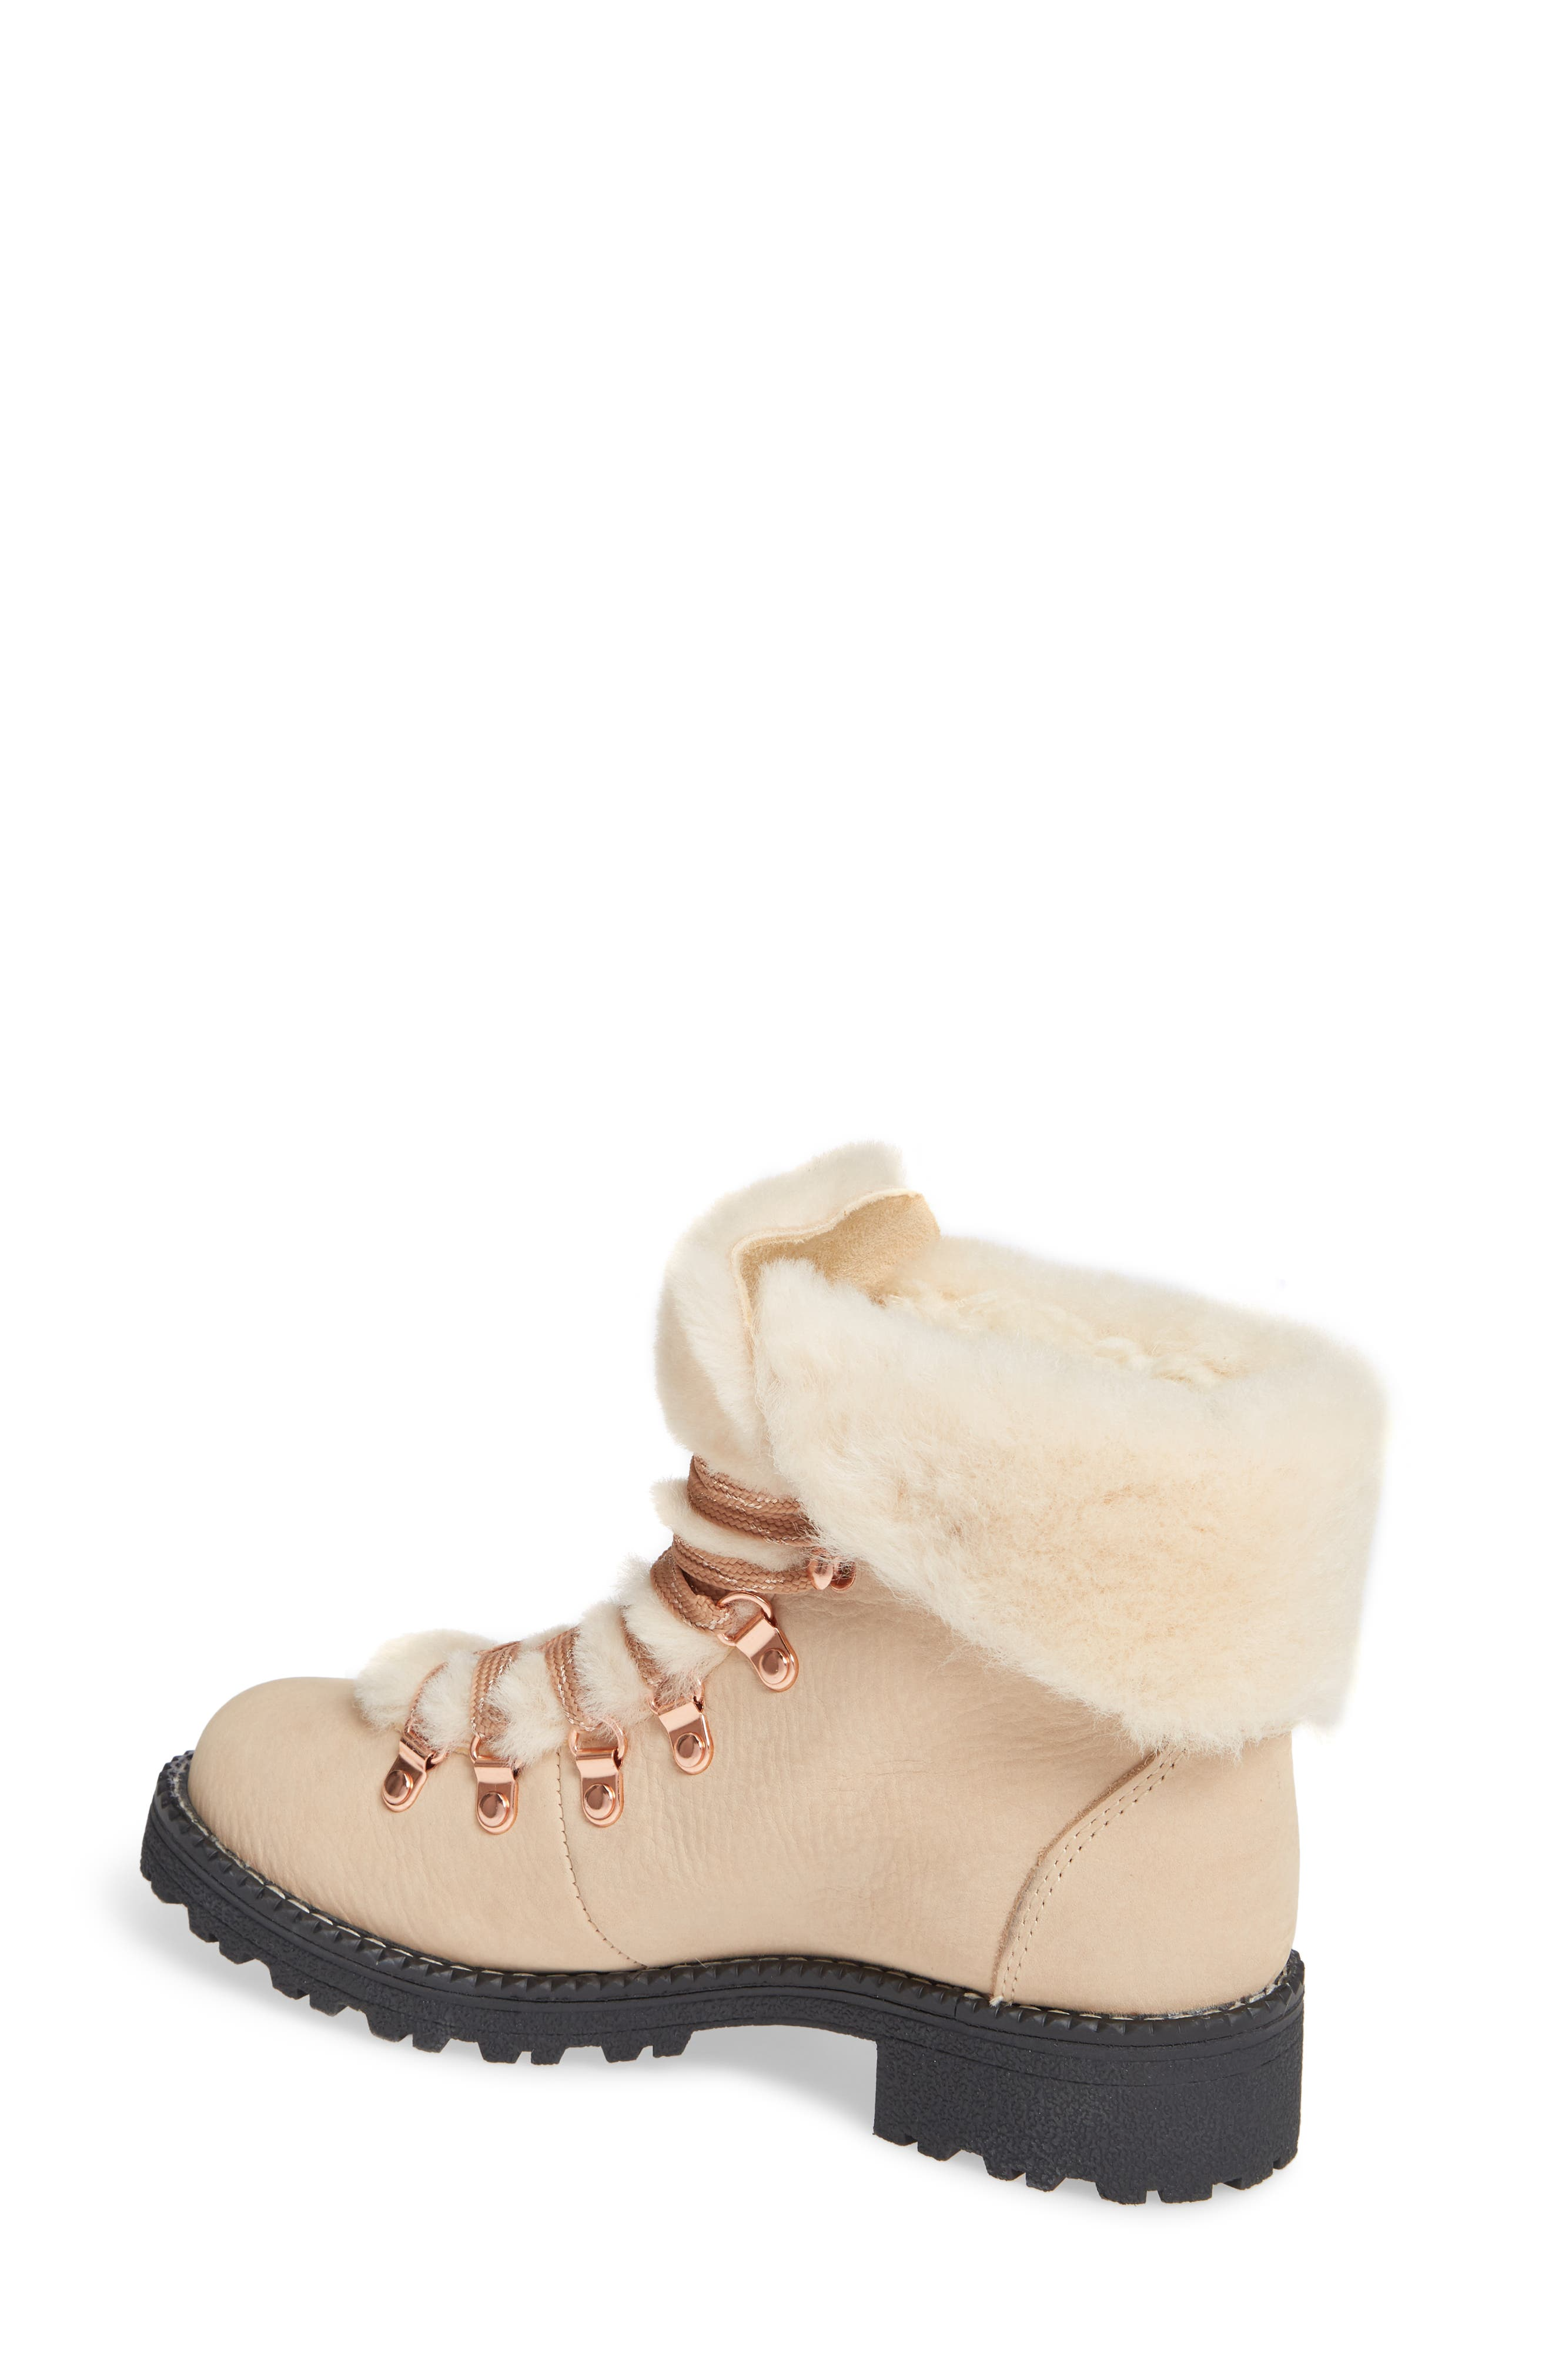 Nordic Genuine Shearling Cuff Winter Boot,                             Alternate thumbnail 2, color,                             DUNE LEATHER